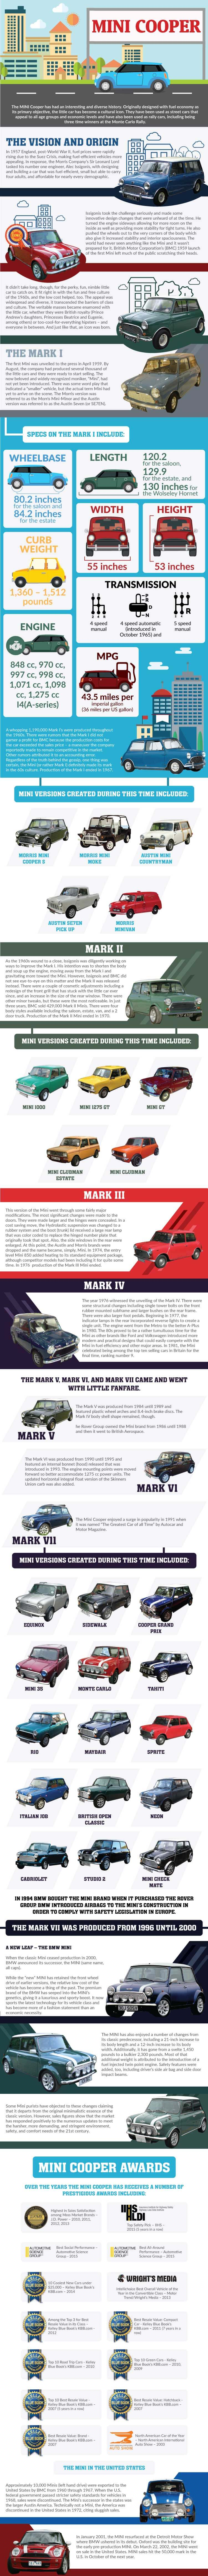 History of the Mini Cooper